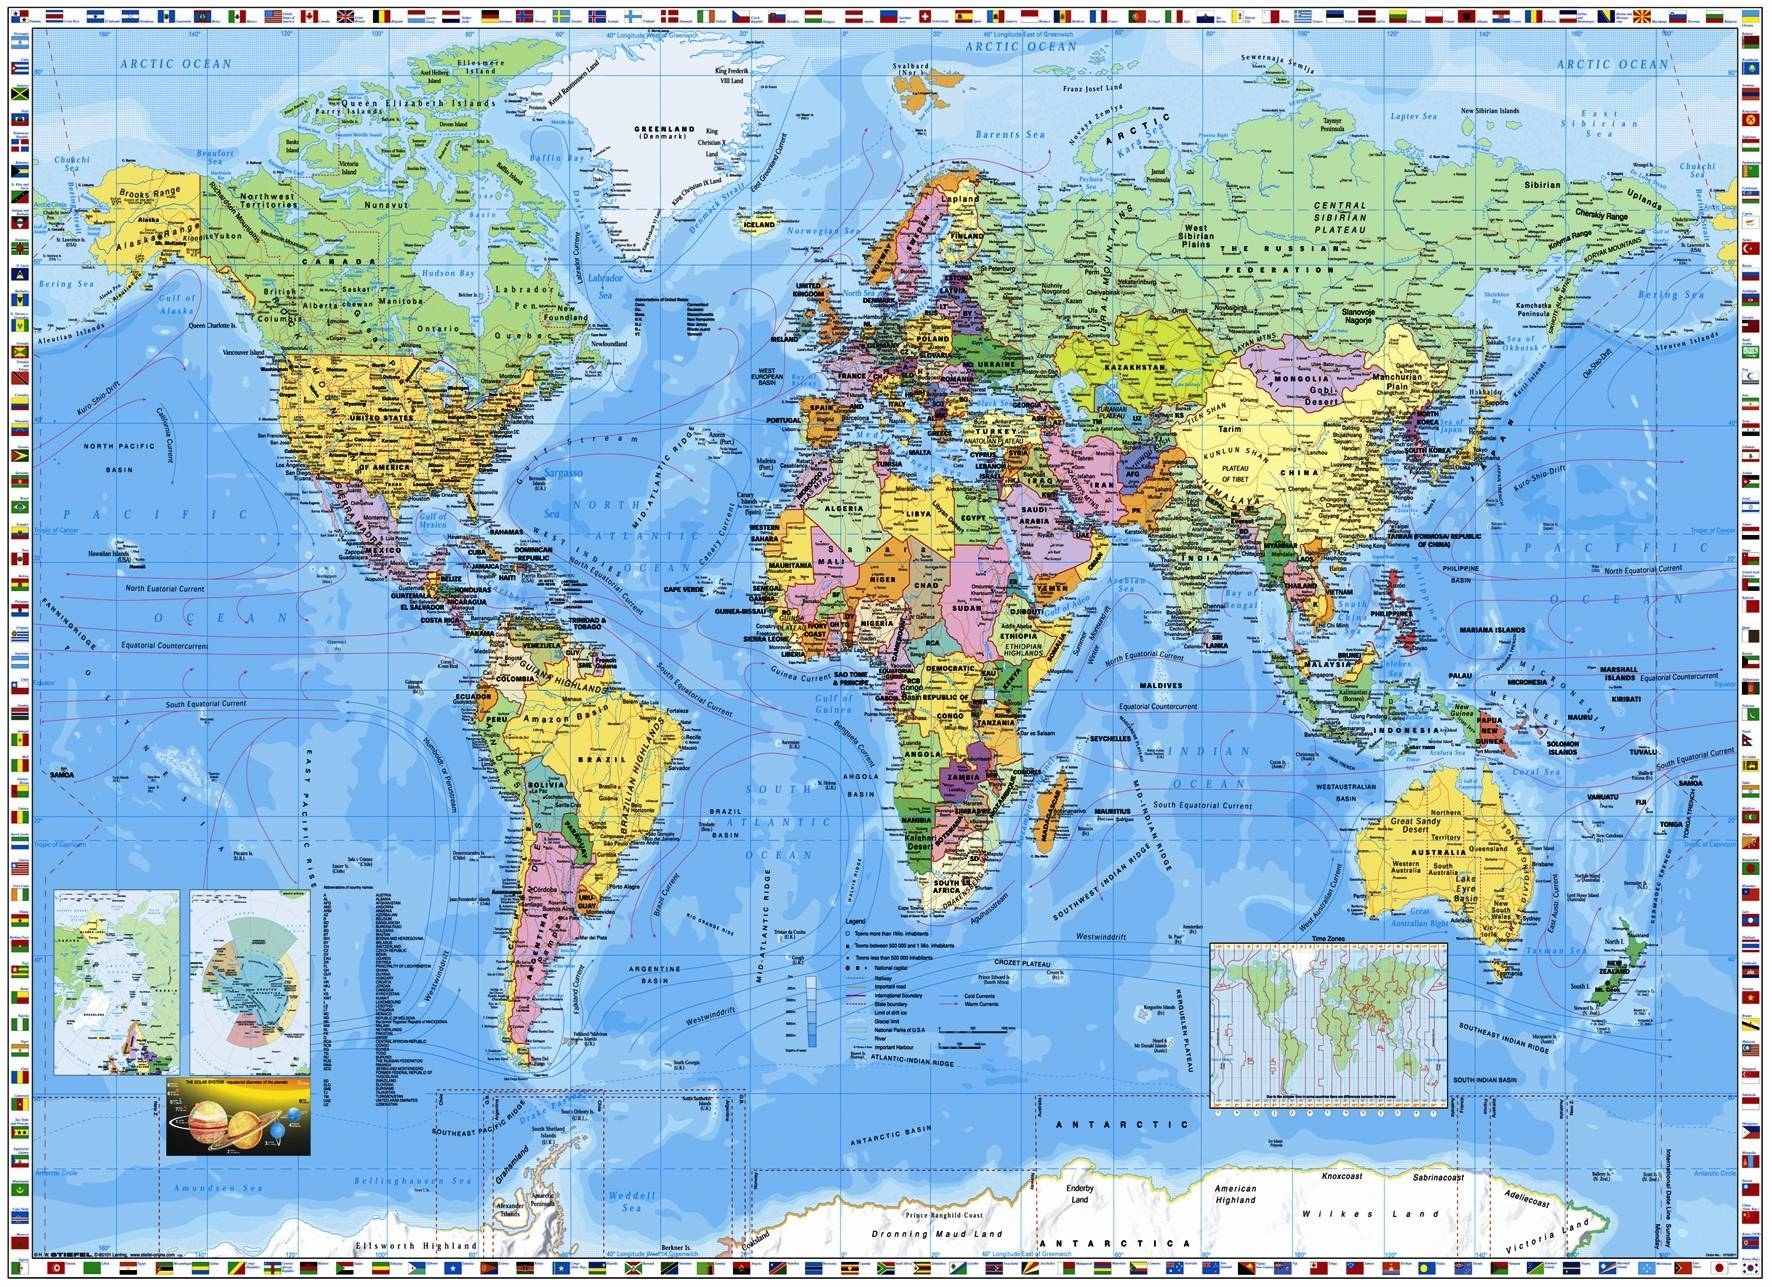 10 latest world map download high resolution full hd 19201080 for 10 latest world map download high resolution full hd 19201080 for pc desktop 2018 gumiabroncs Gallery